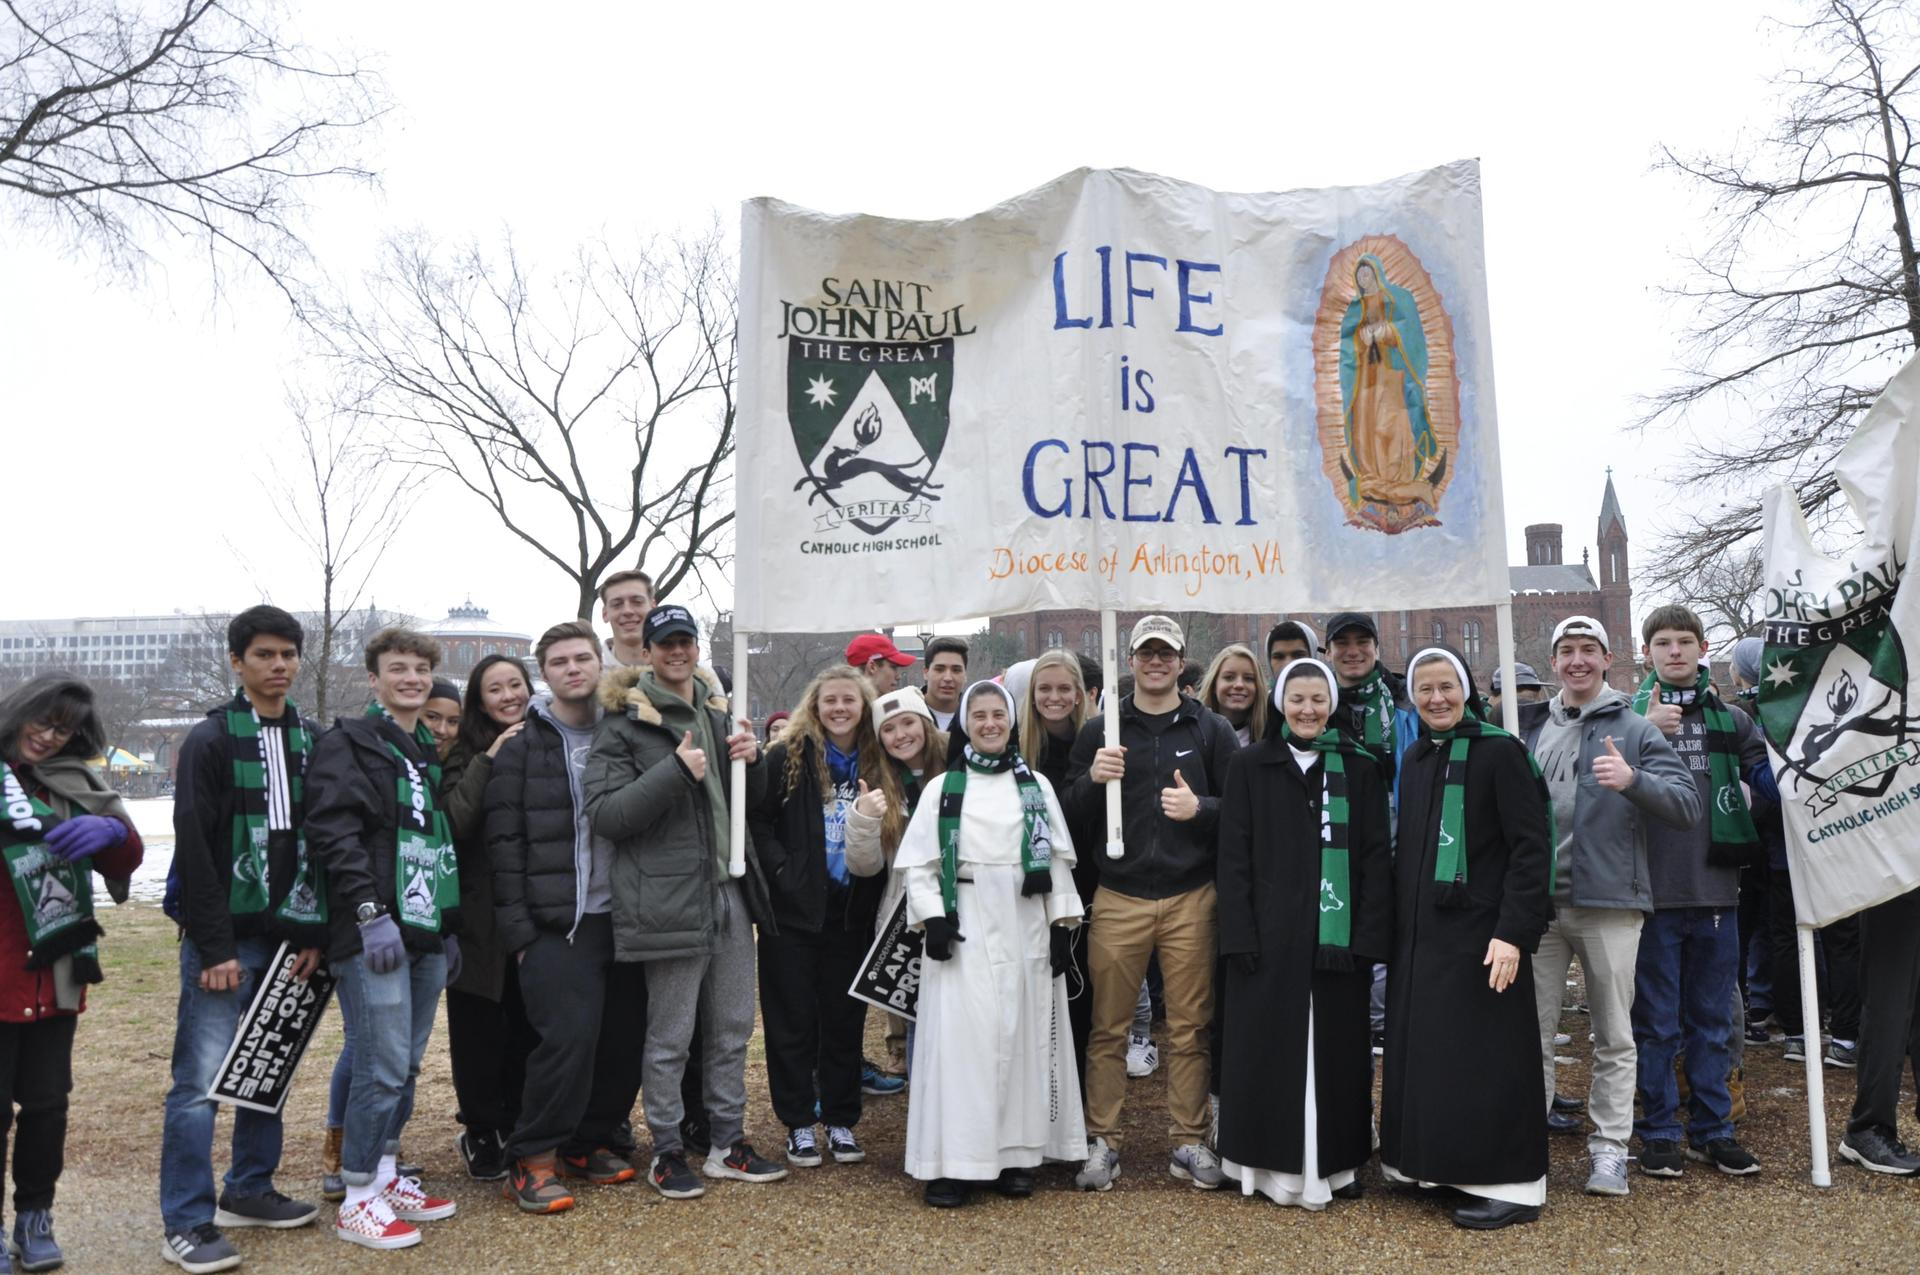 Members of the community at the March for Life